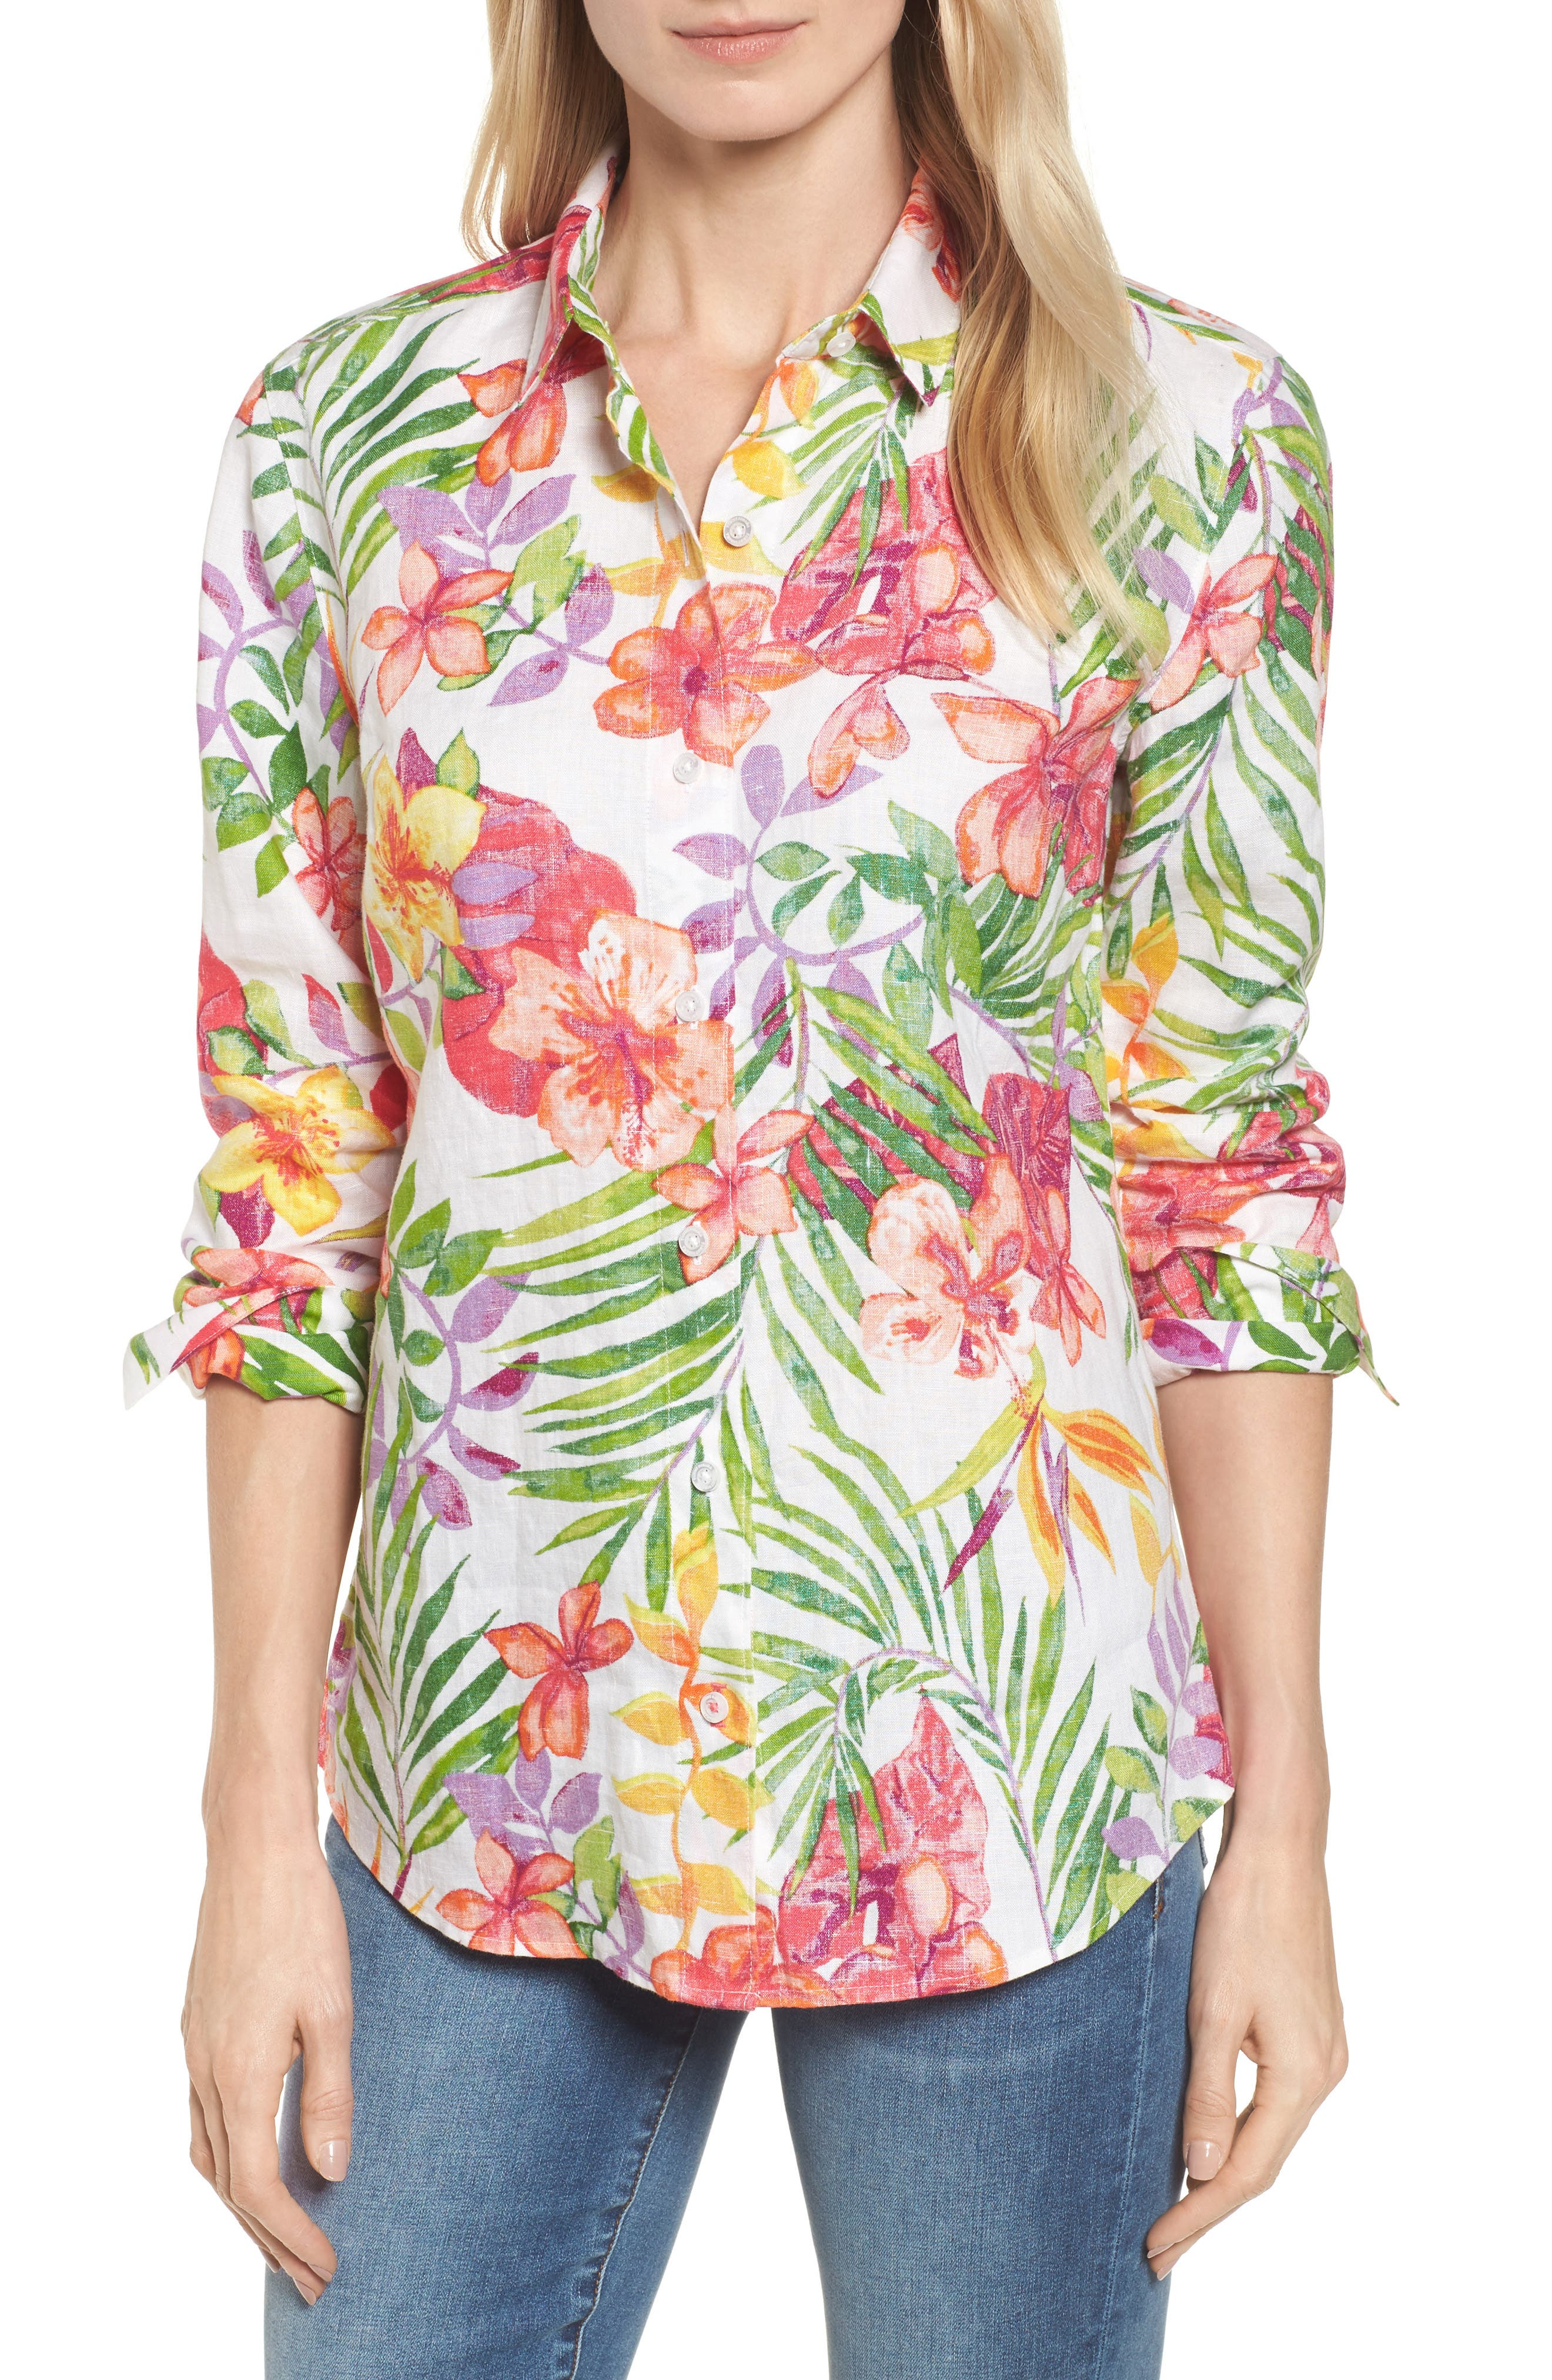 Alternate Image 1 Selected - Tommy Bahama Marabella Blooms Button Down Shirt